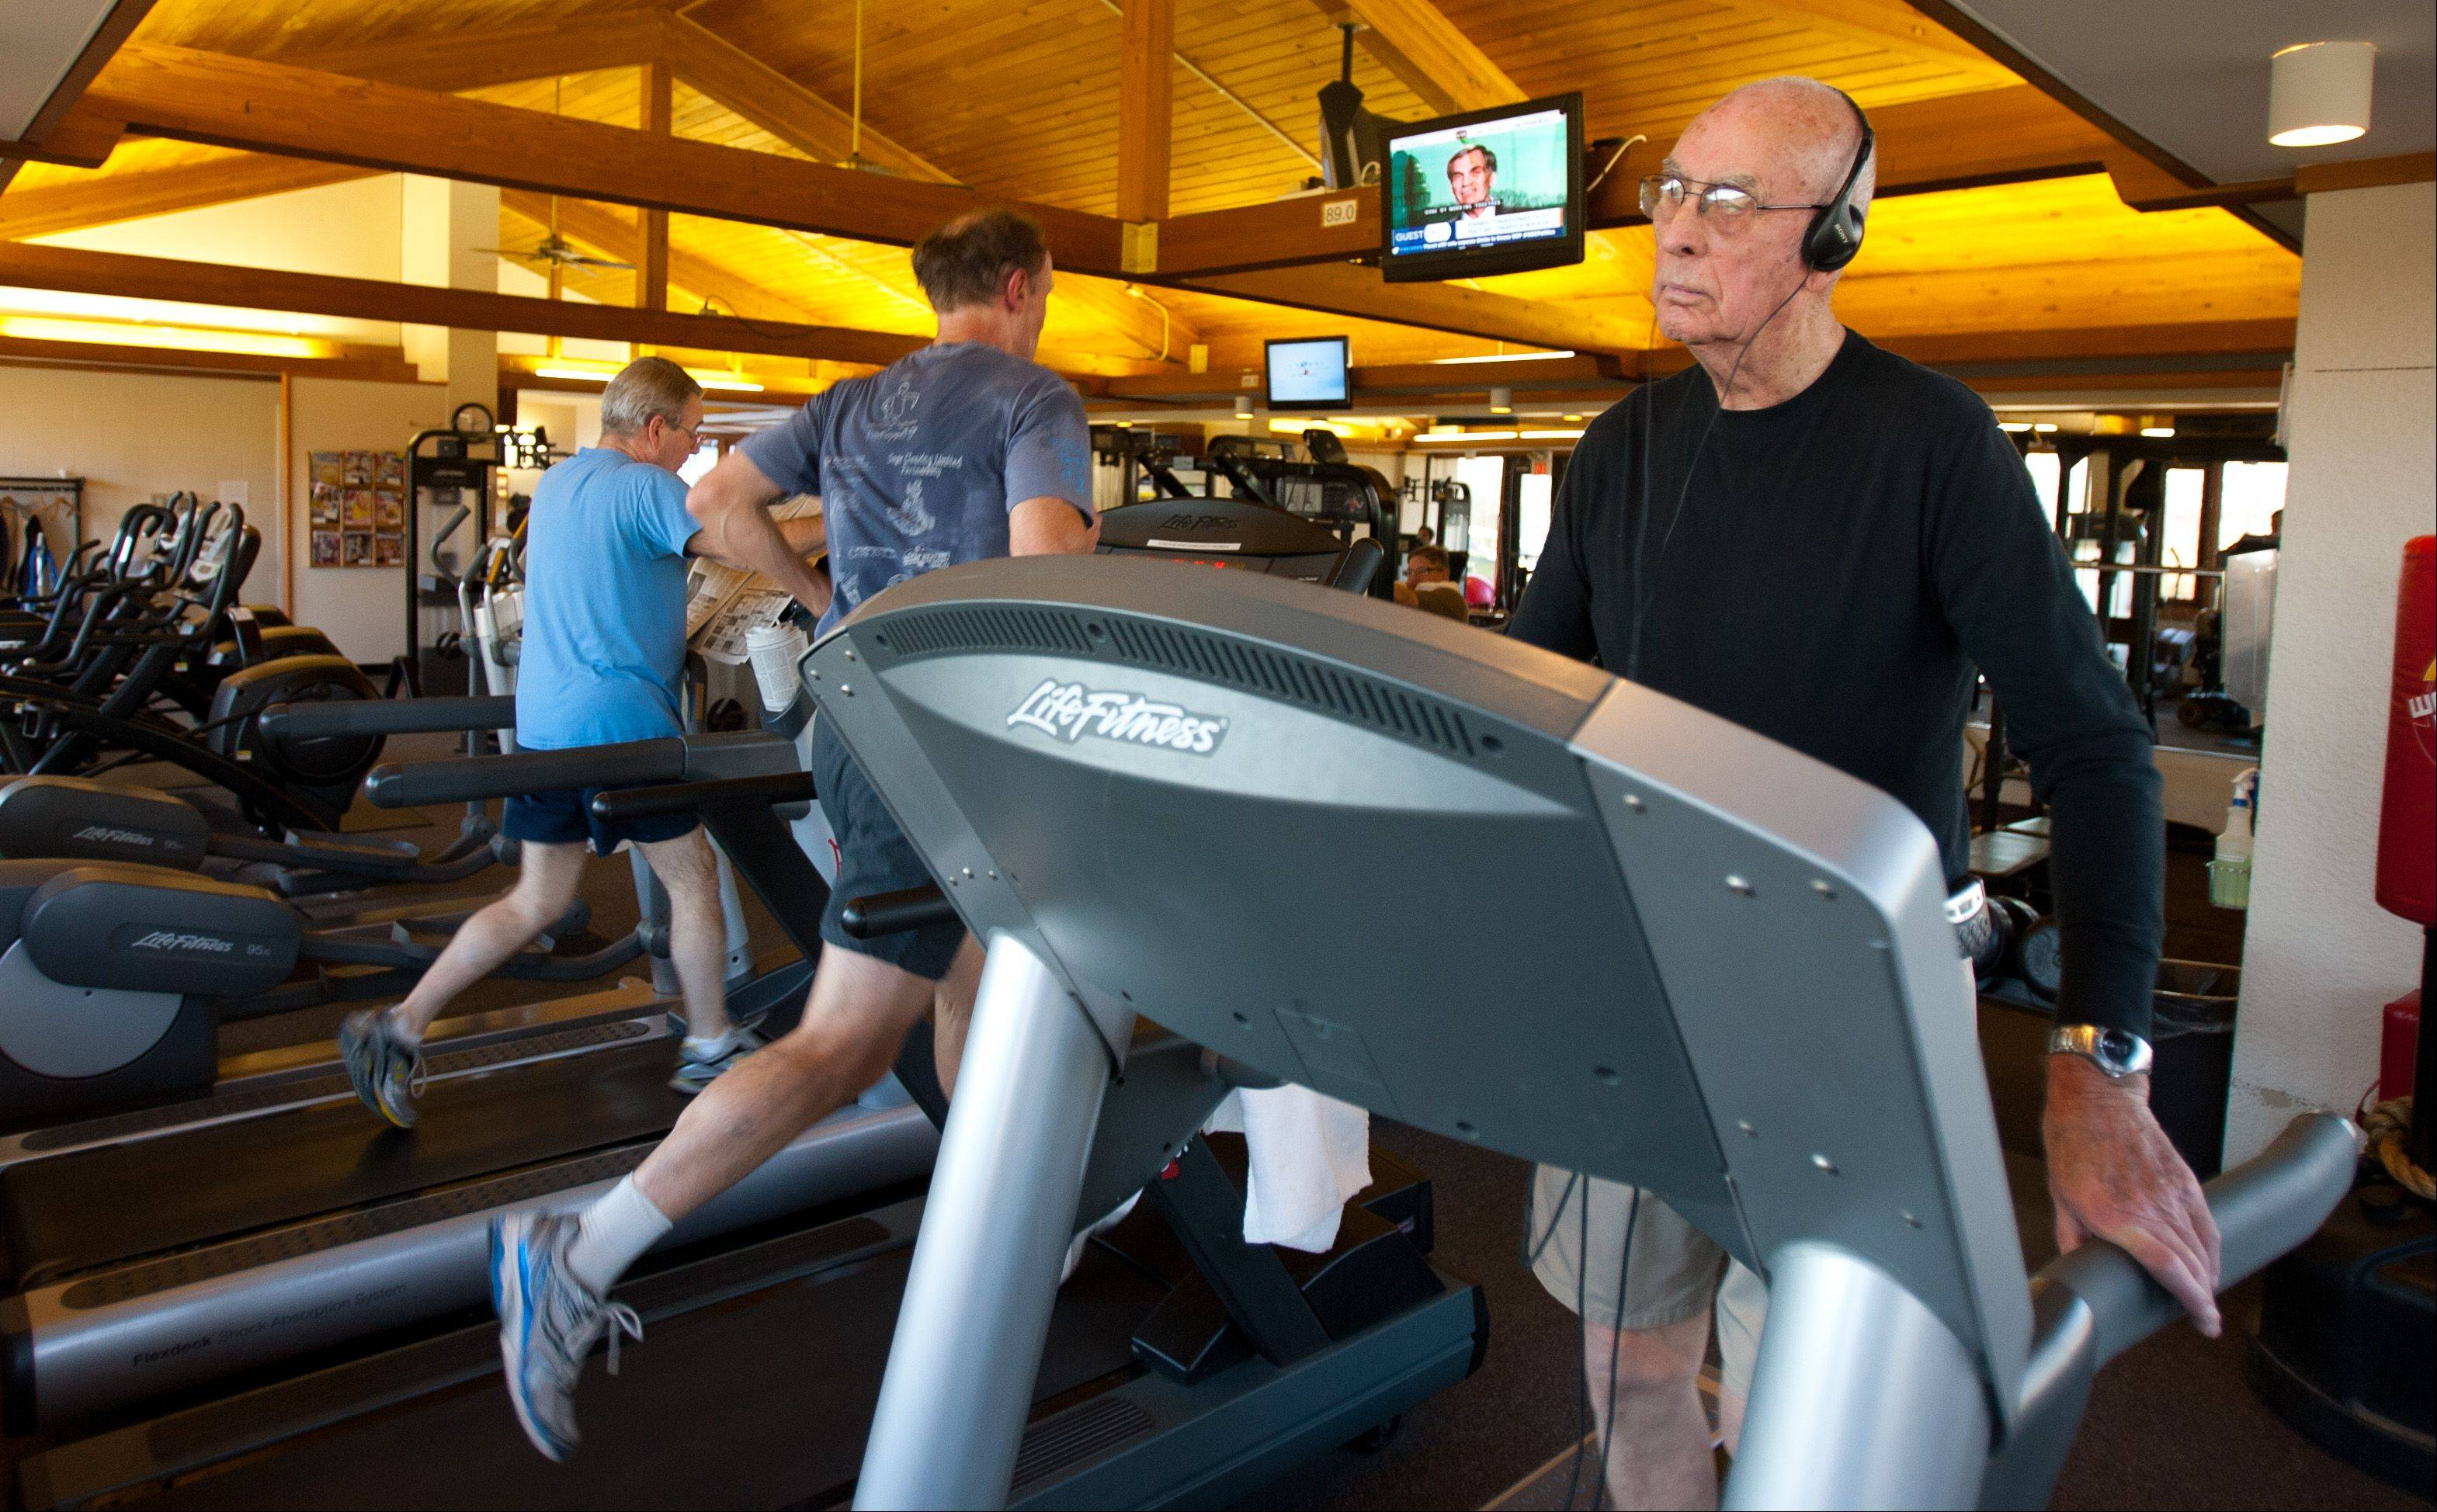 Wearing headphones, 90-year-old Charles Fultz does 35 minutes on the treadmill during his 1½-hour workout.